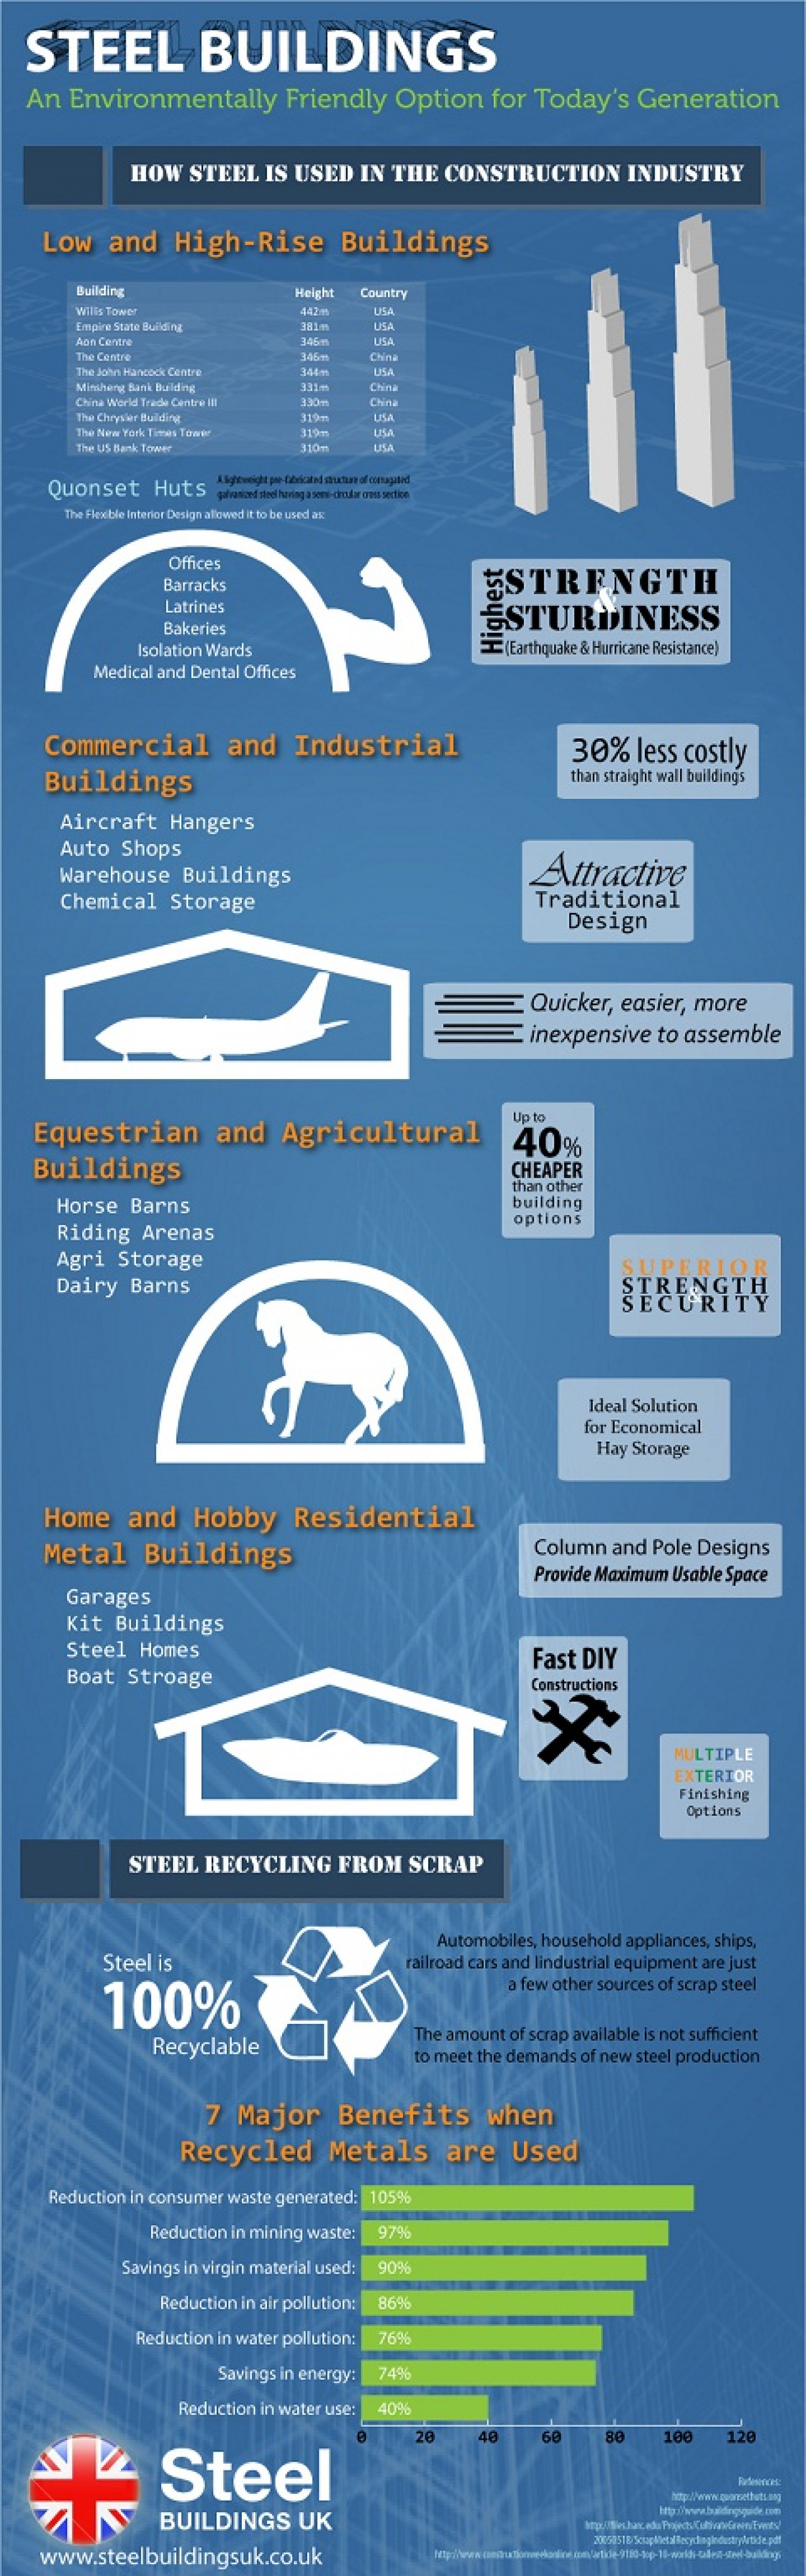 Steel Buildings: An Environmentally Friendly Option for Today's Generation Infographic